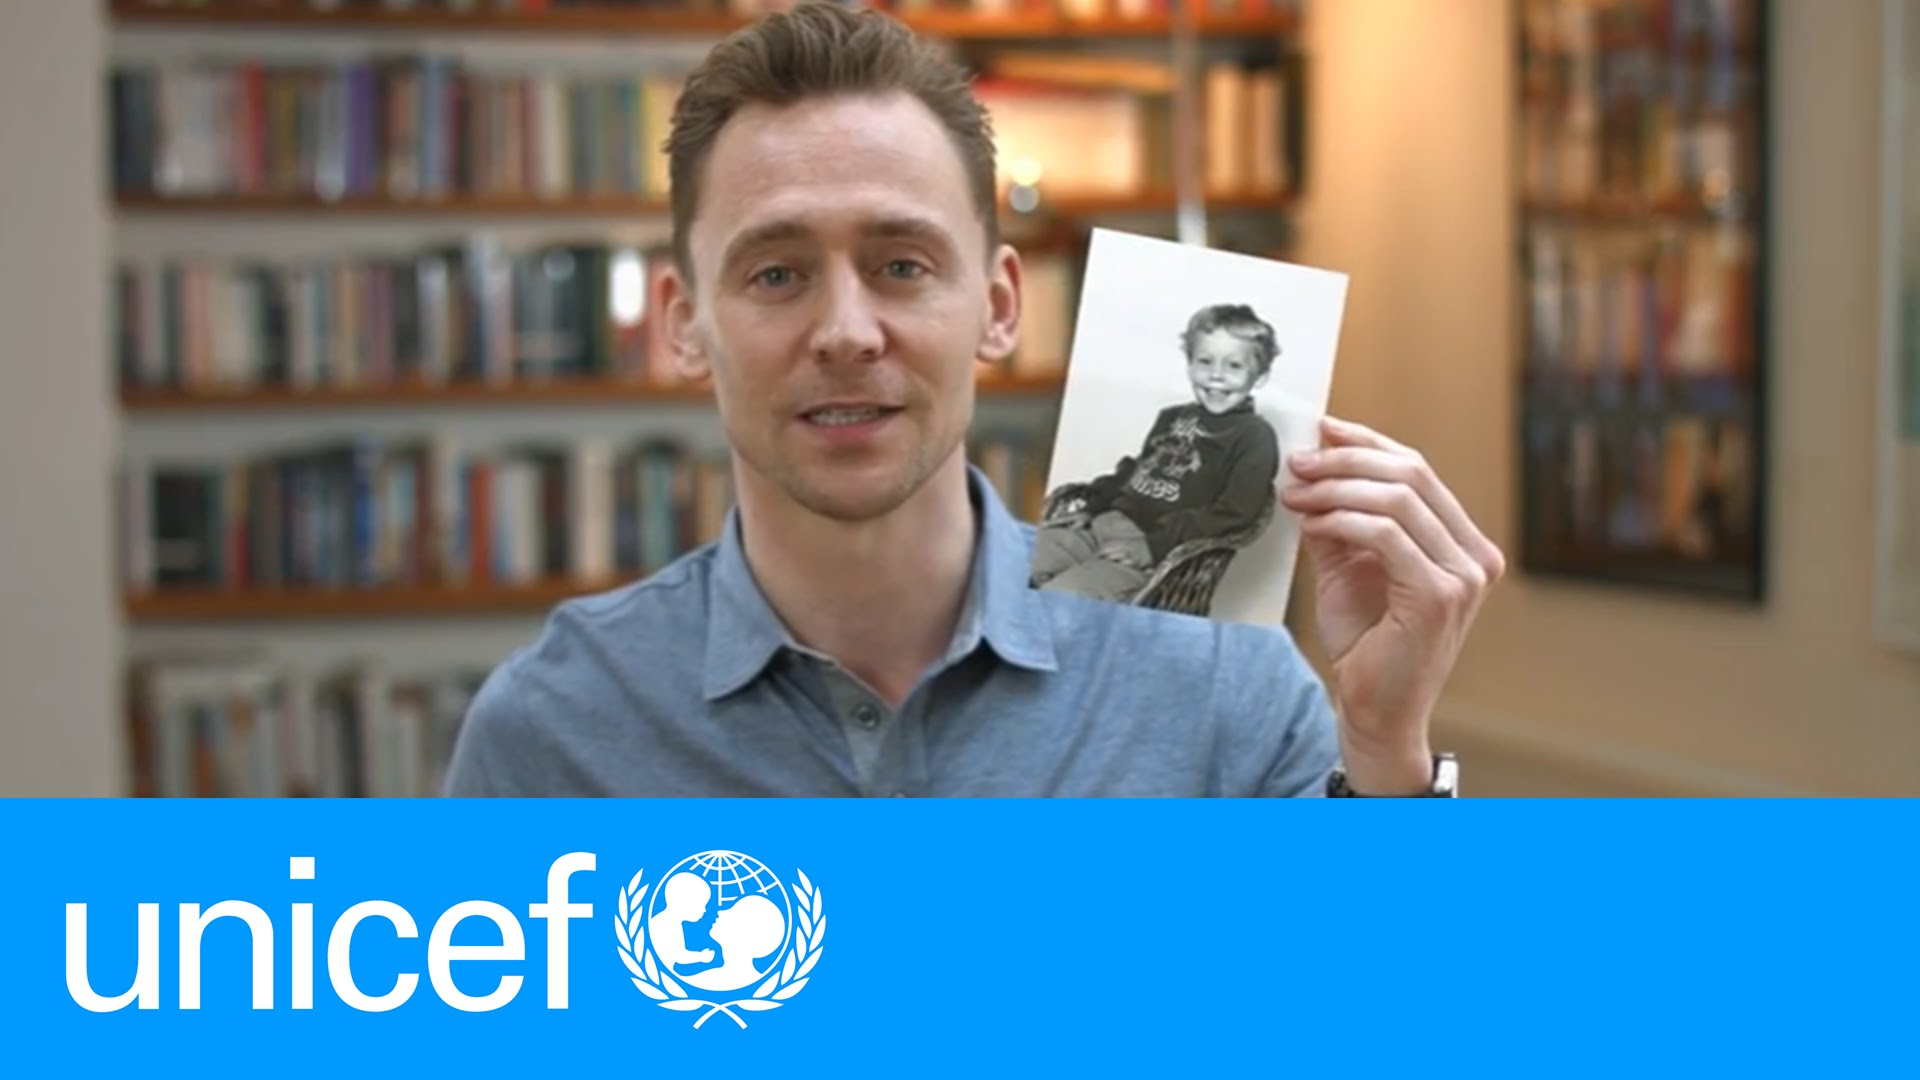 「#EmergencyLessons 跟著『洛基』關懷兒童教育」- Tom Hiddleston Shares His School Photo